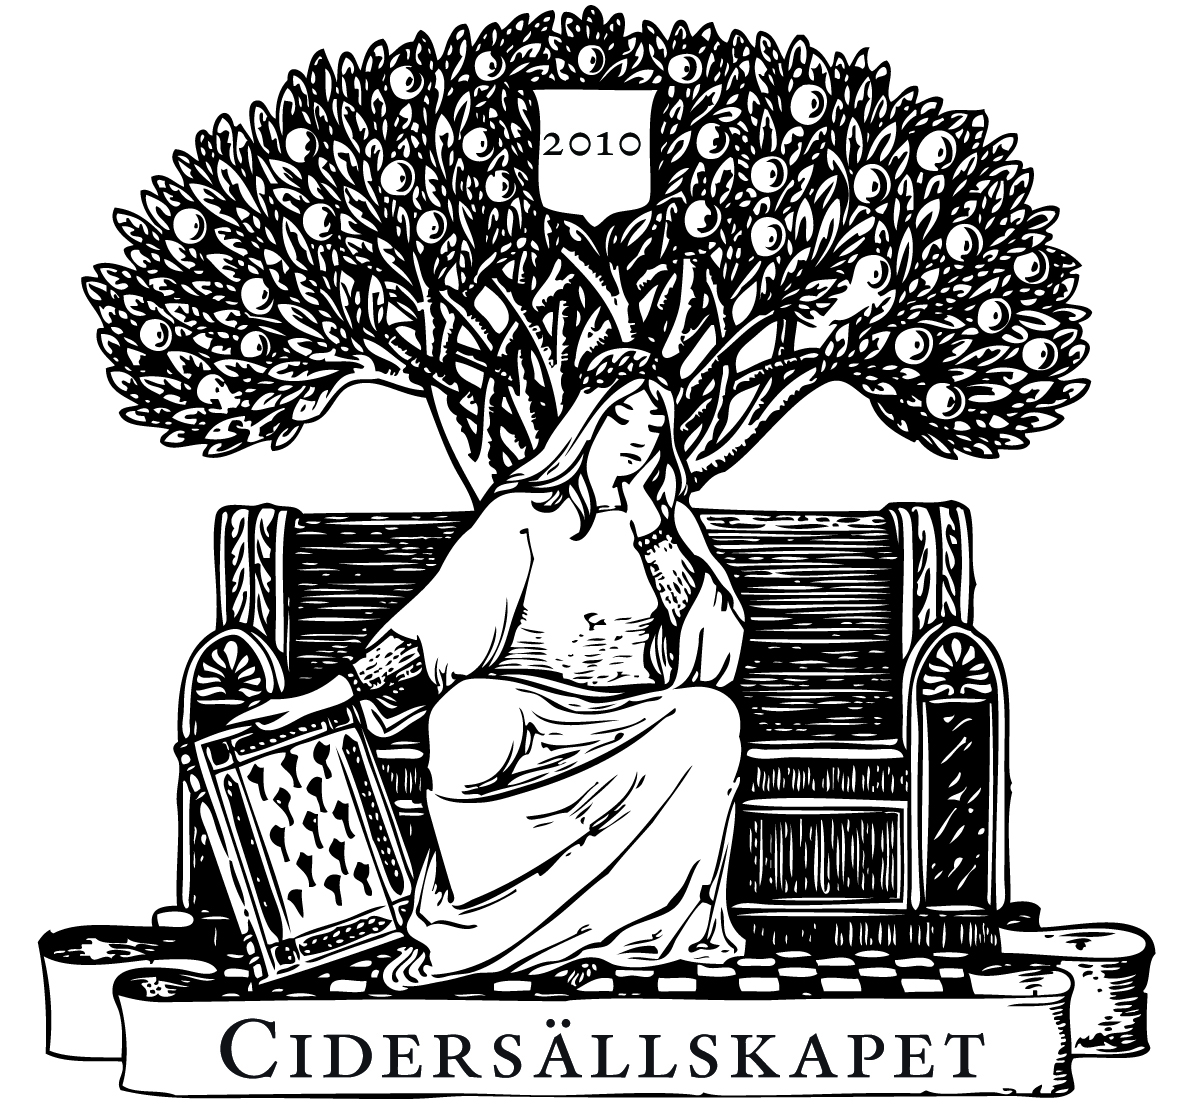 Cidersällskapet